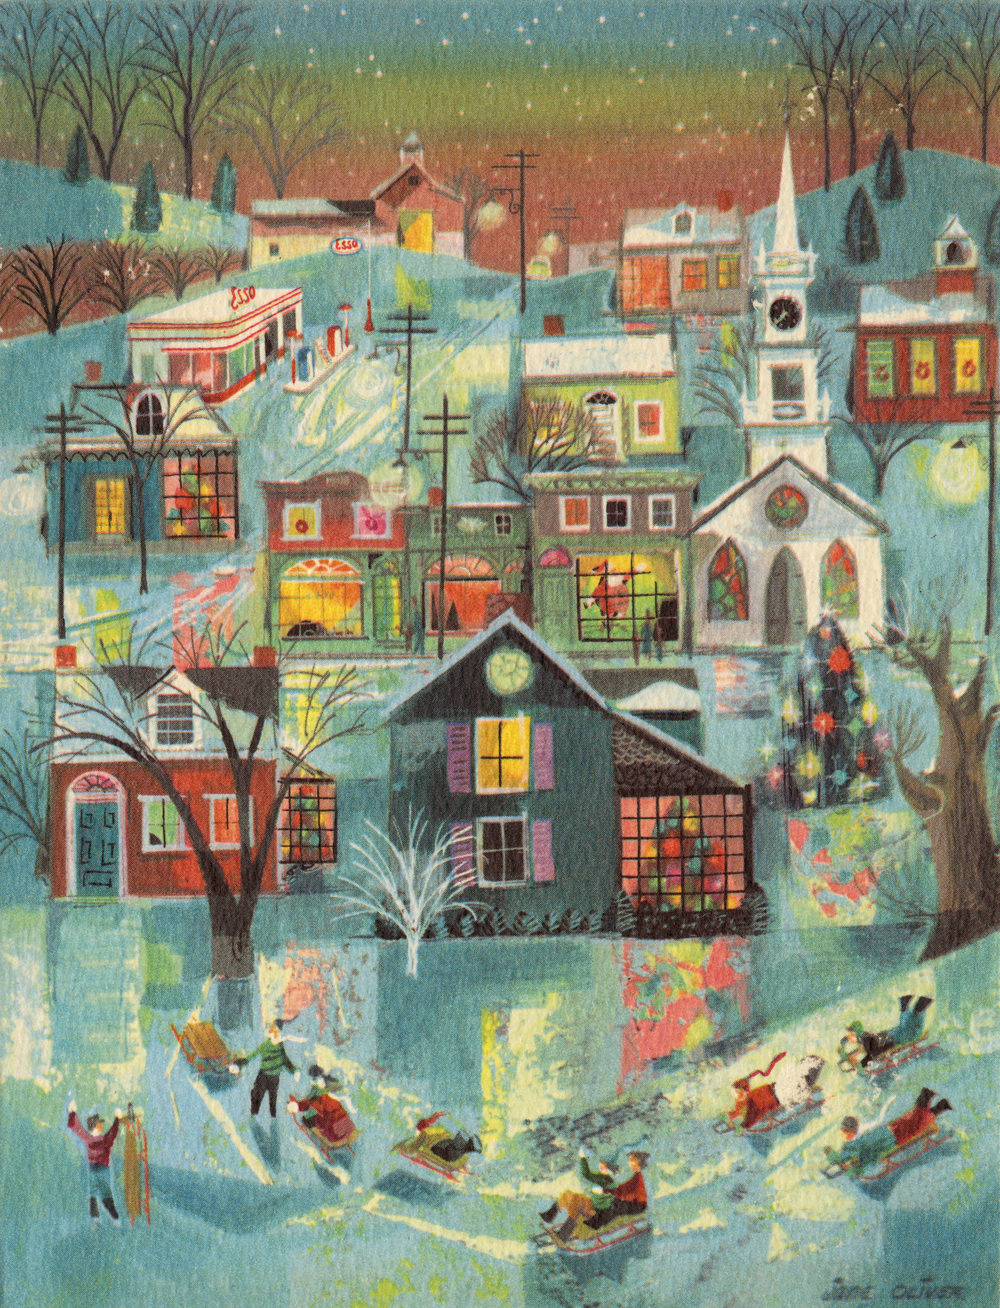 Jane Oliver. Holiday Card. Undated.